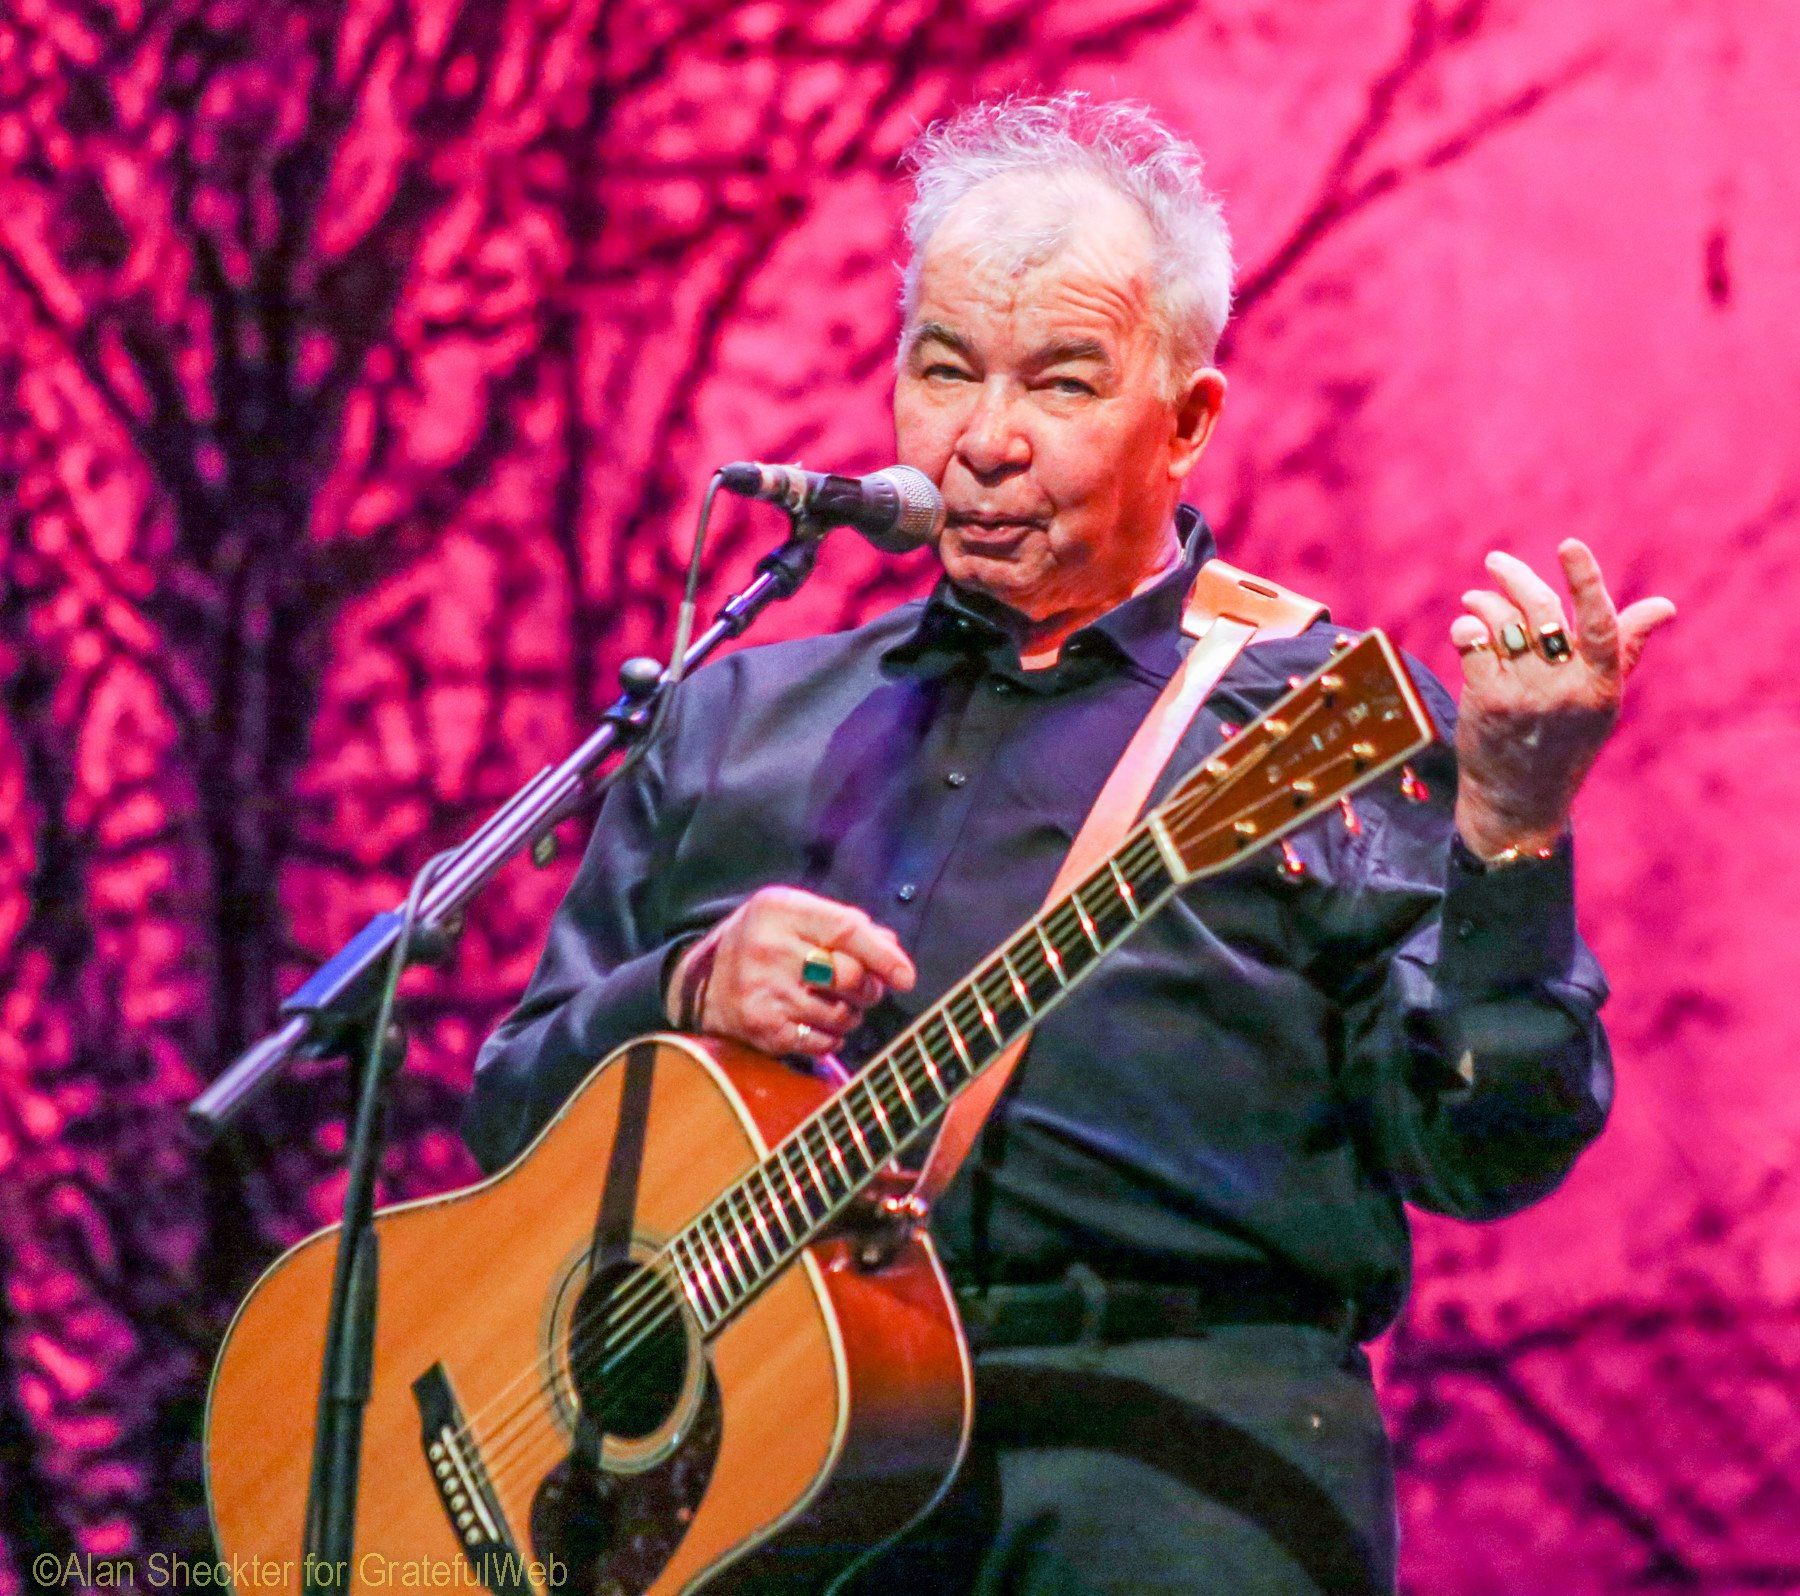 John Prine named Artist of the Year at 2020 Americana Awards